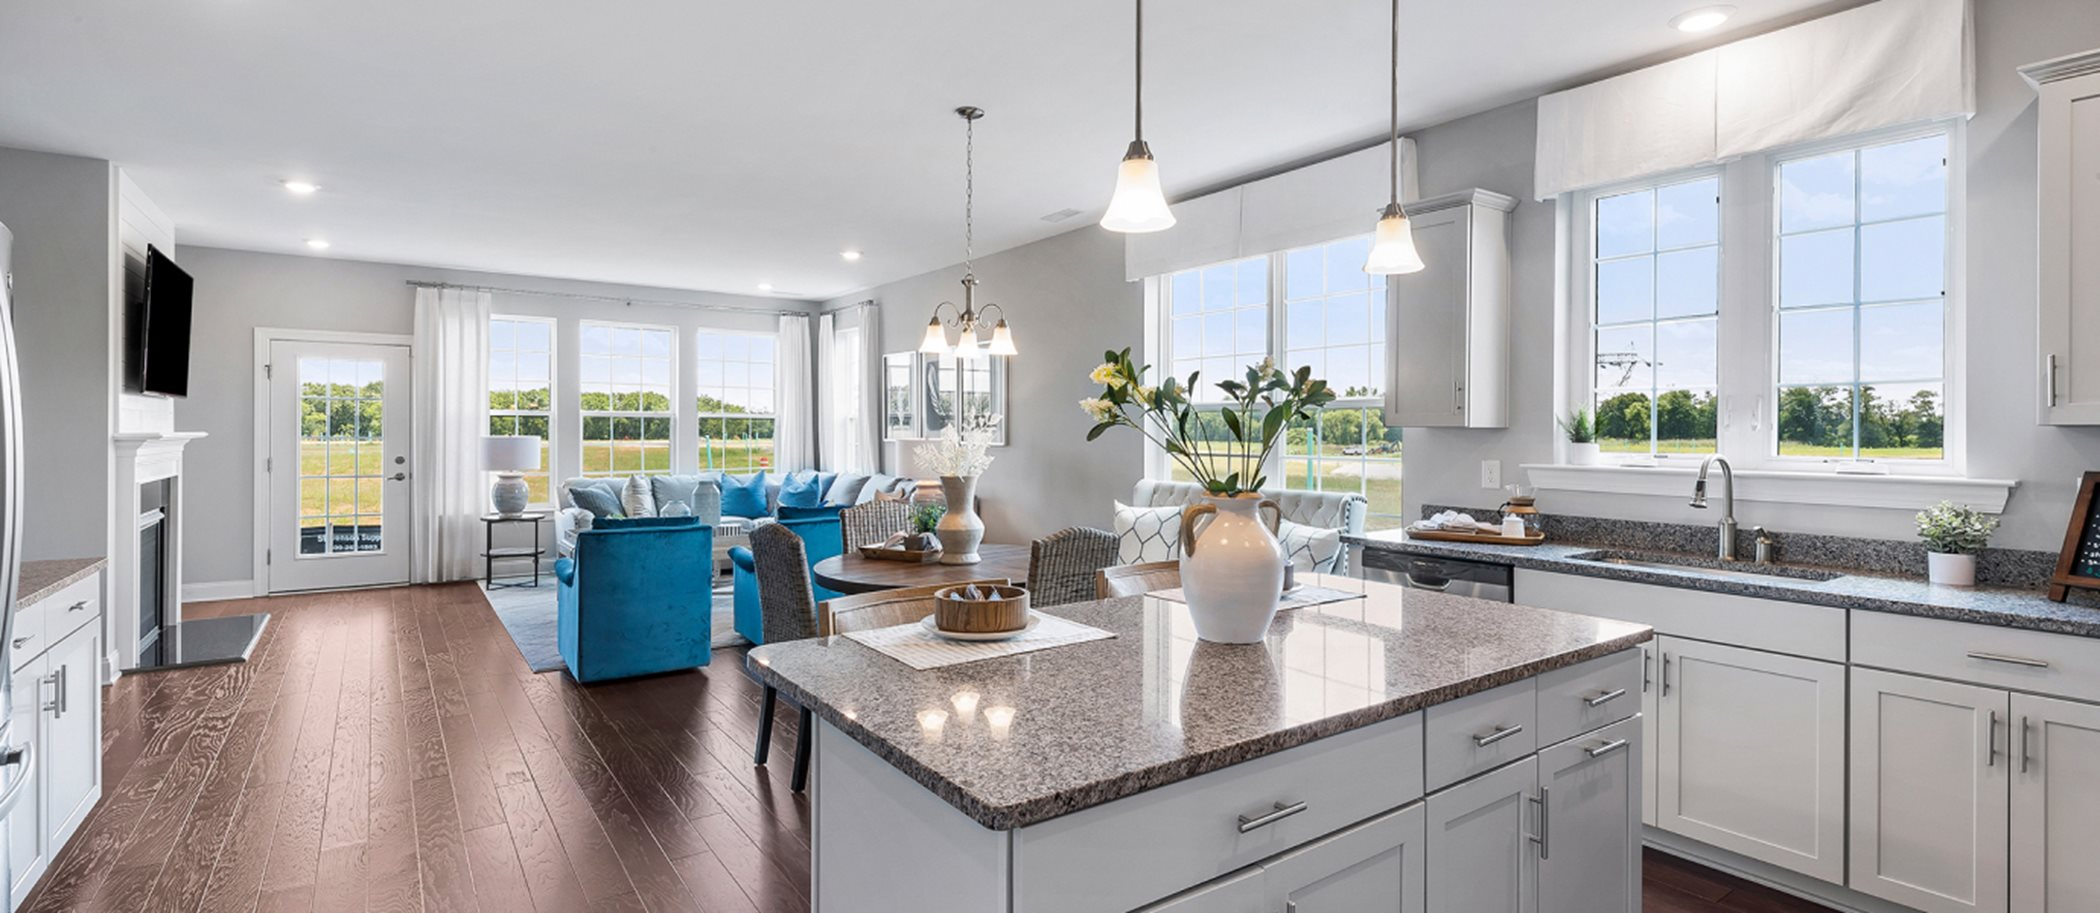 Venue at Smithville Greene Active Adult (55+) Community of Single Homes Merion kitchen